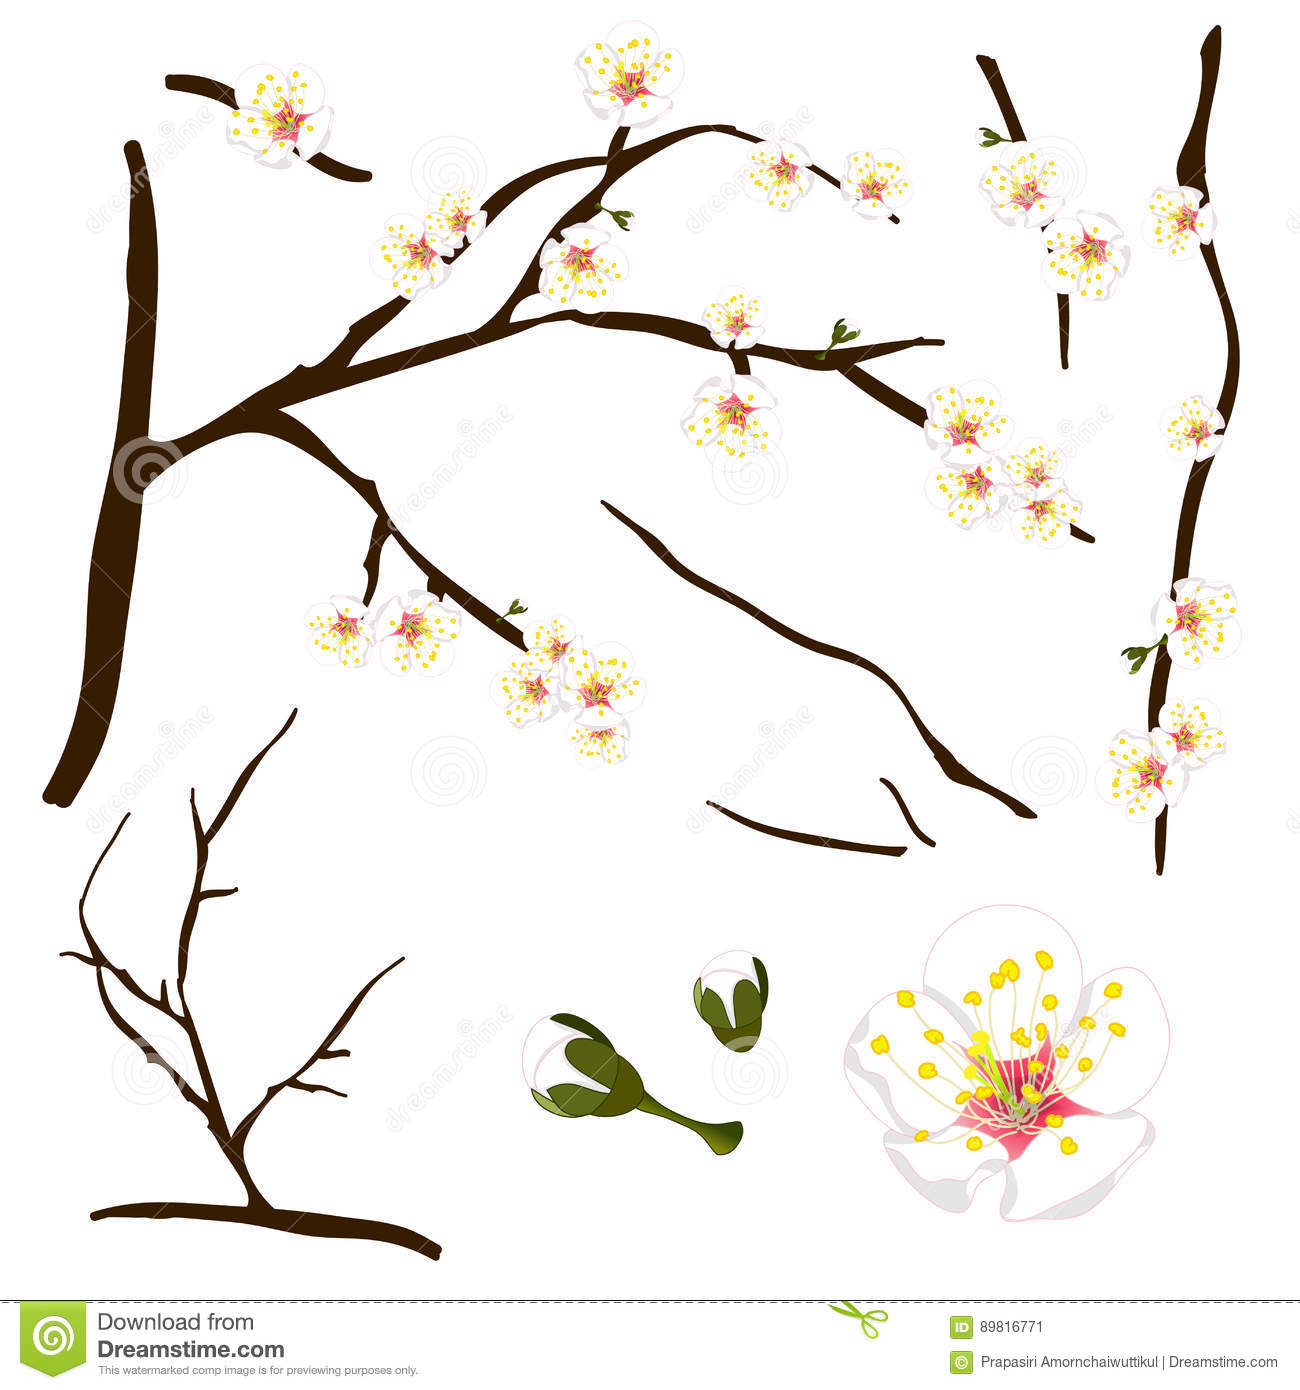 Prunus Blossom clipart #3, Download drawings